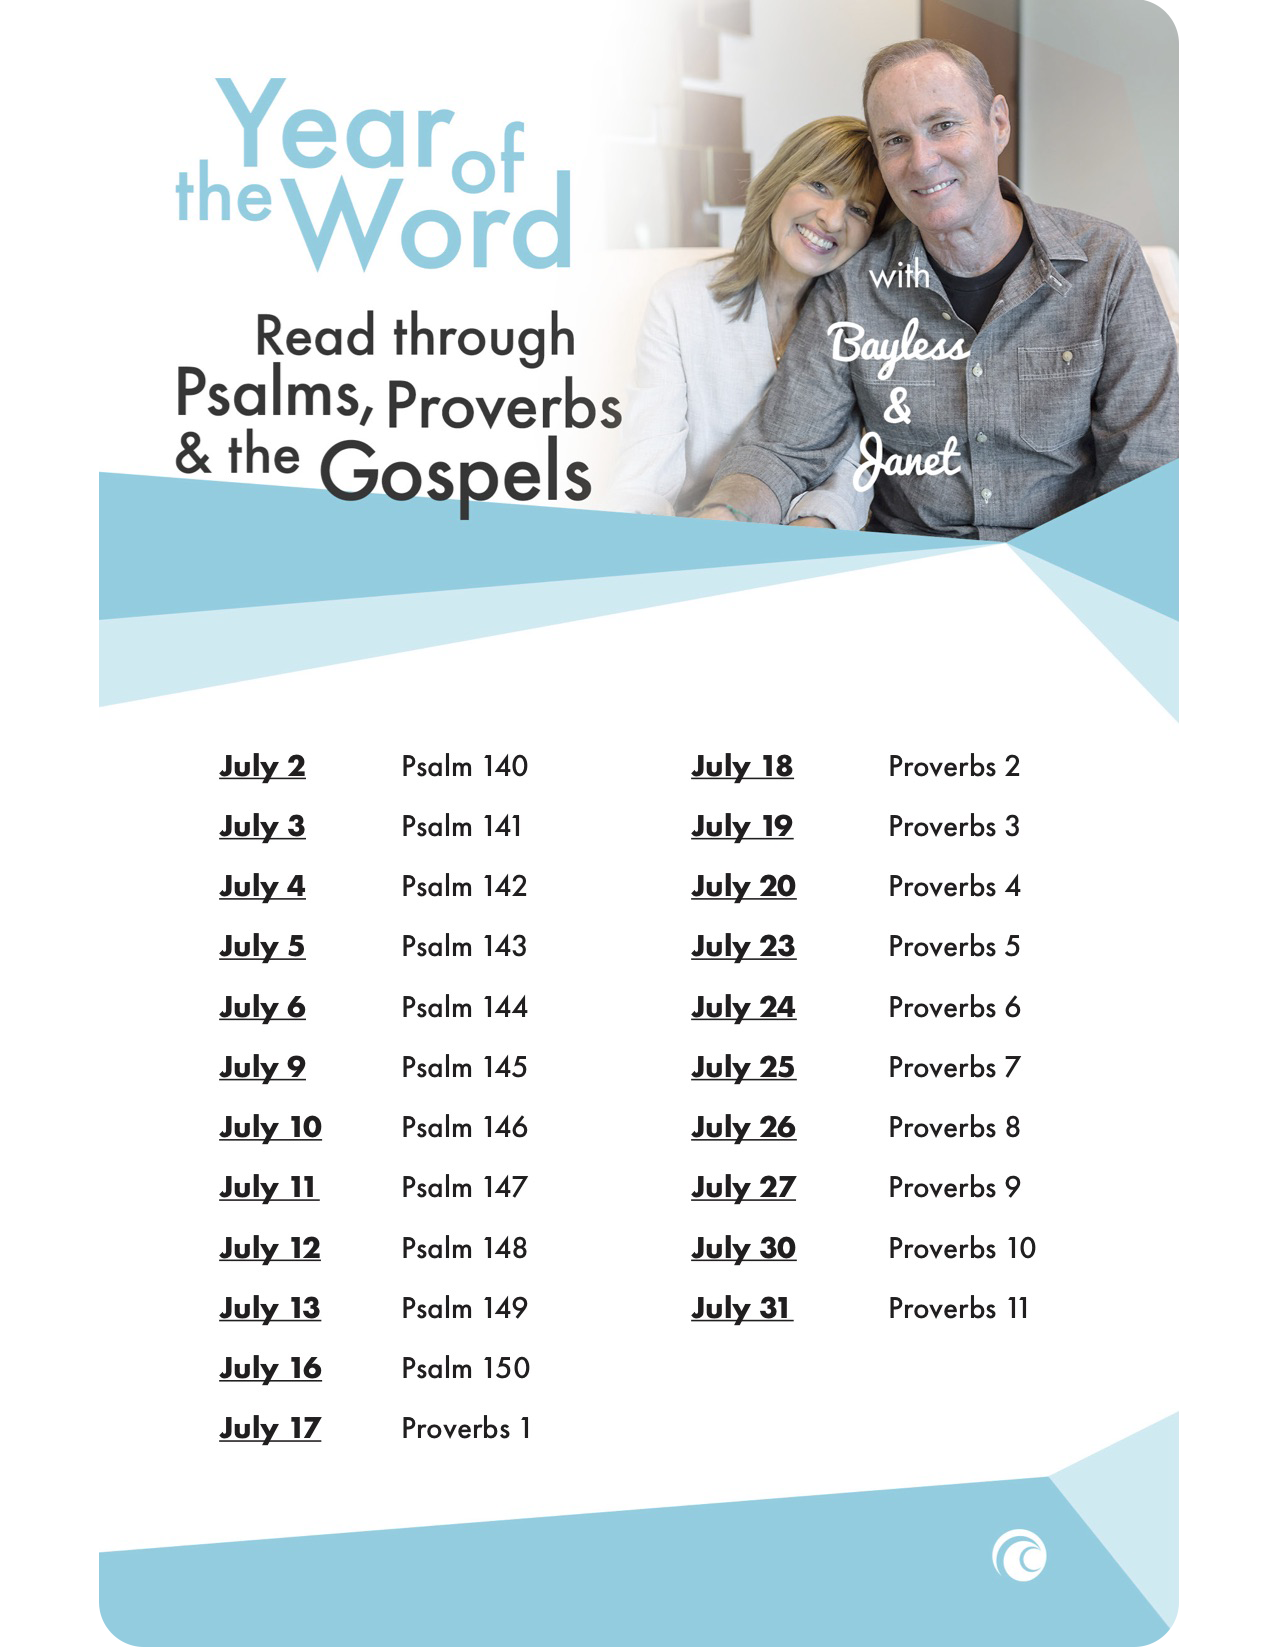 year of the word with bayless and janet read through the psalms proverbs and the gospels